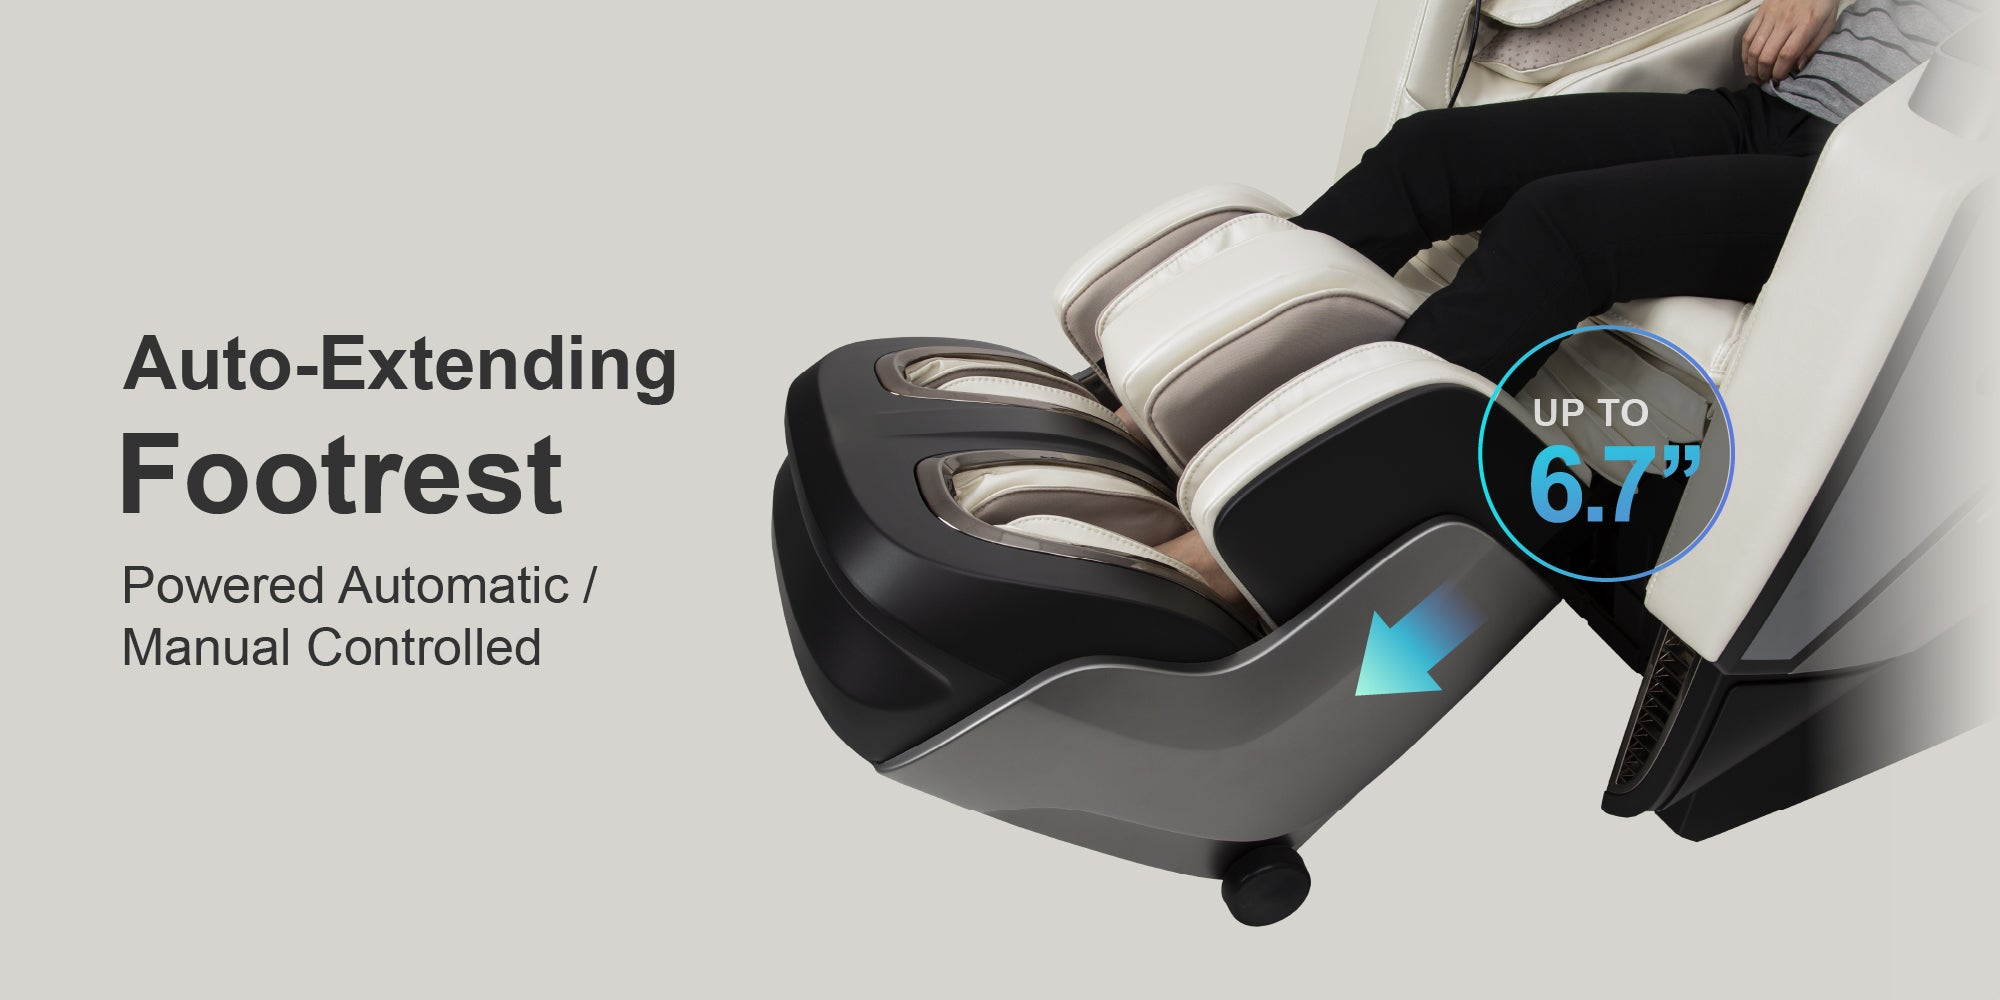 Extendable Footrest - Powered Automatic / Manual controlled